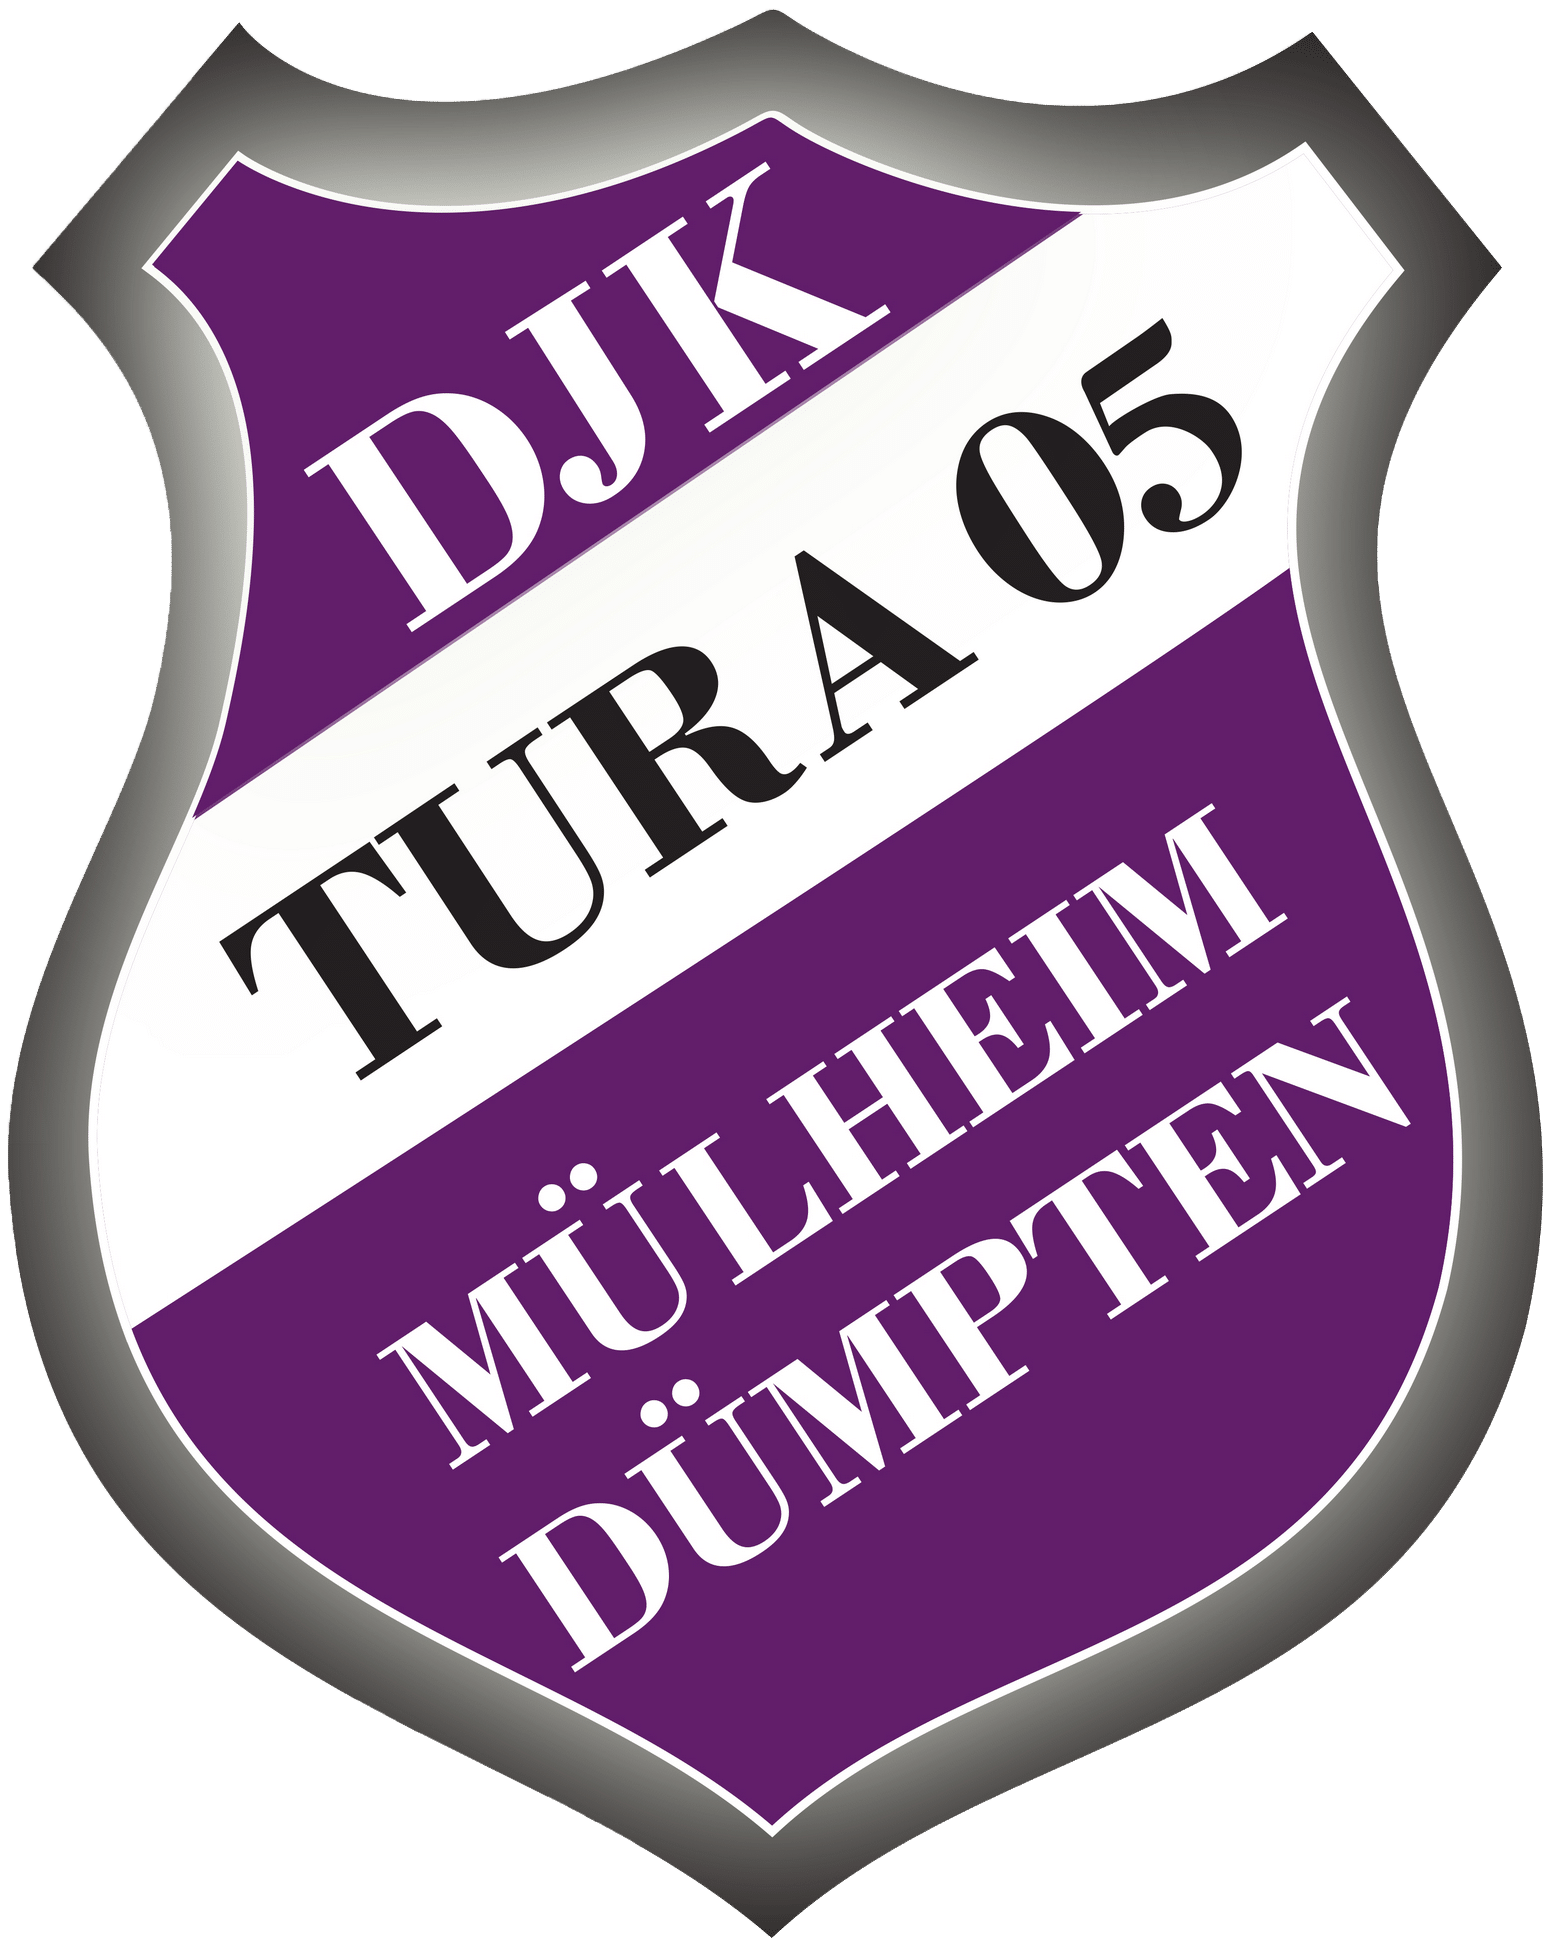 DJK Tura05 Dümpten e.V.